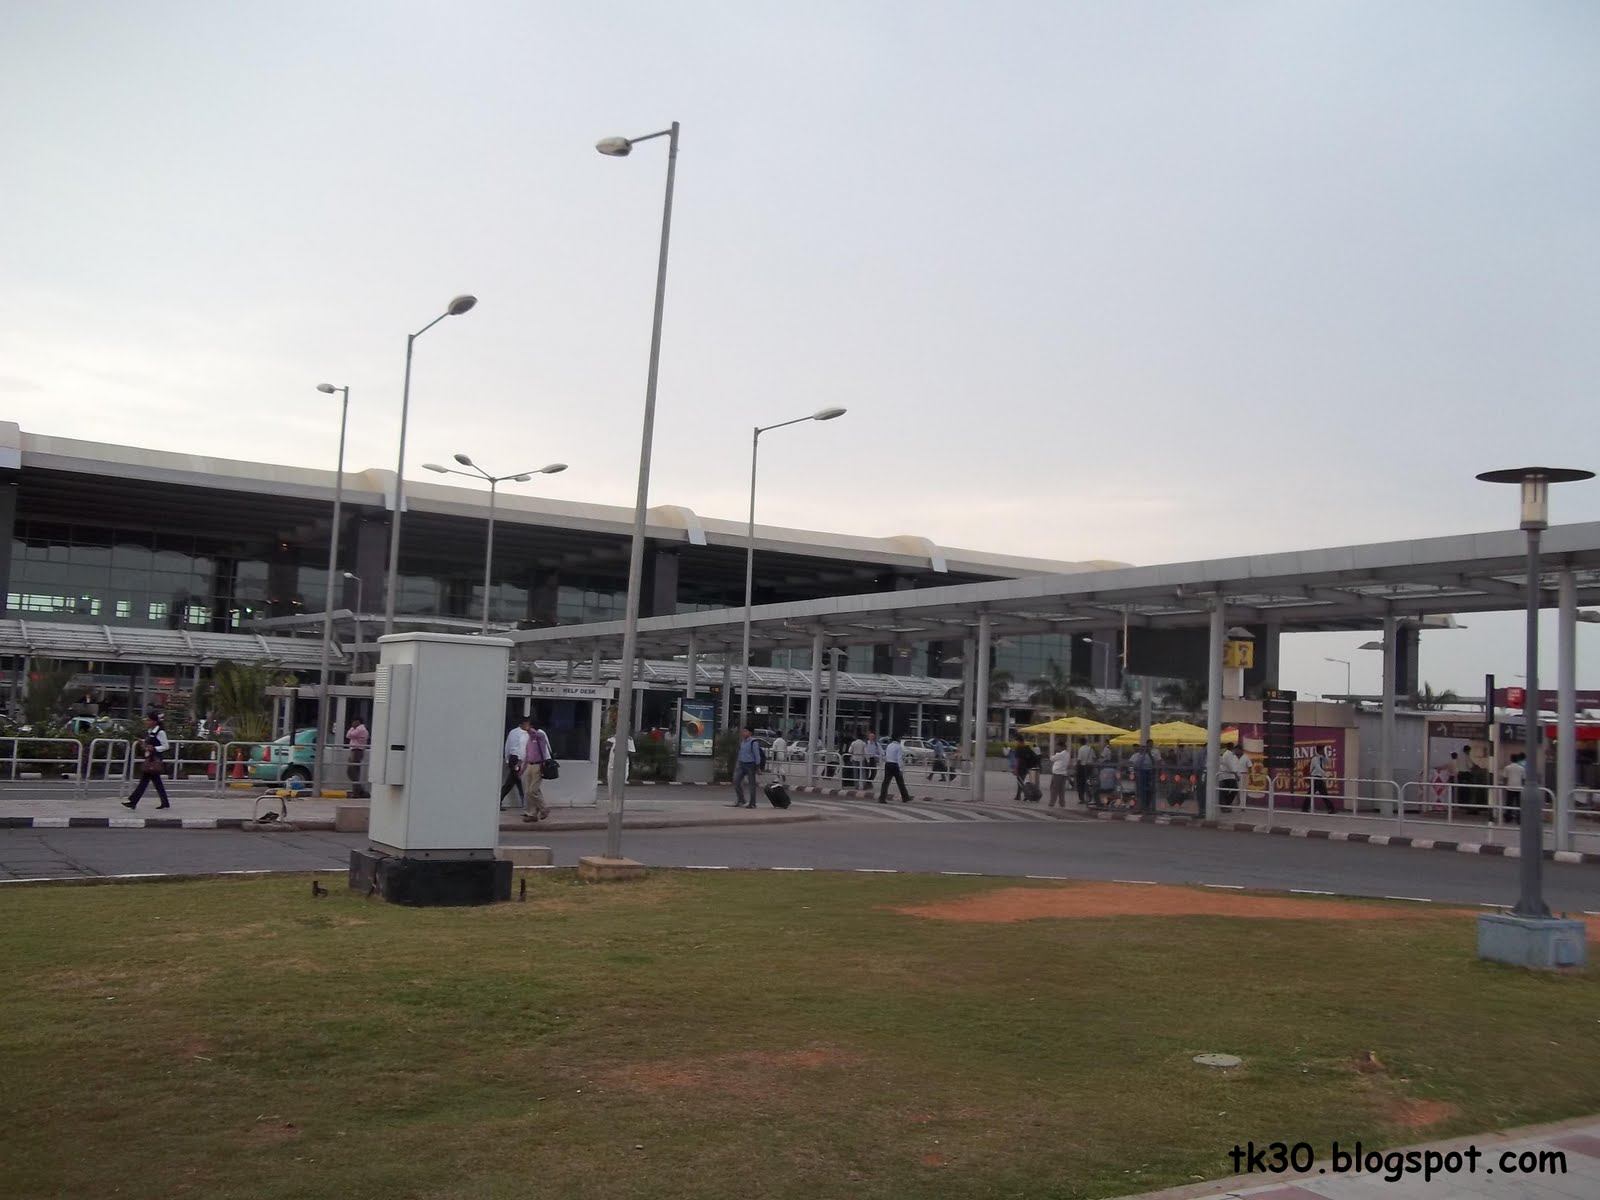 dating sites in india bangalore airport bus Address, devanahalli, bengaluru (bangalore), india  shelved is still officially  ongoing, although a start date is yet to be announced  public transport and  taxis, bus: bangalore metropolitan transport corporation (tel: 1 800 425 1663   service connecting various locations in the city to kempegowda international  airport.